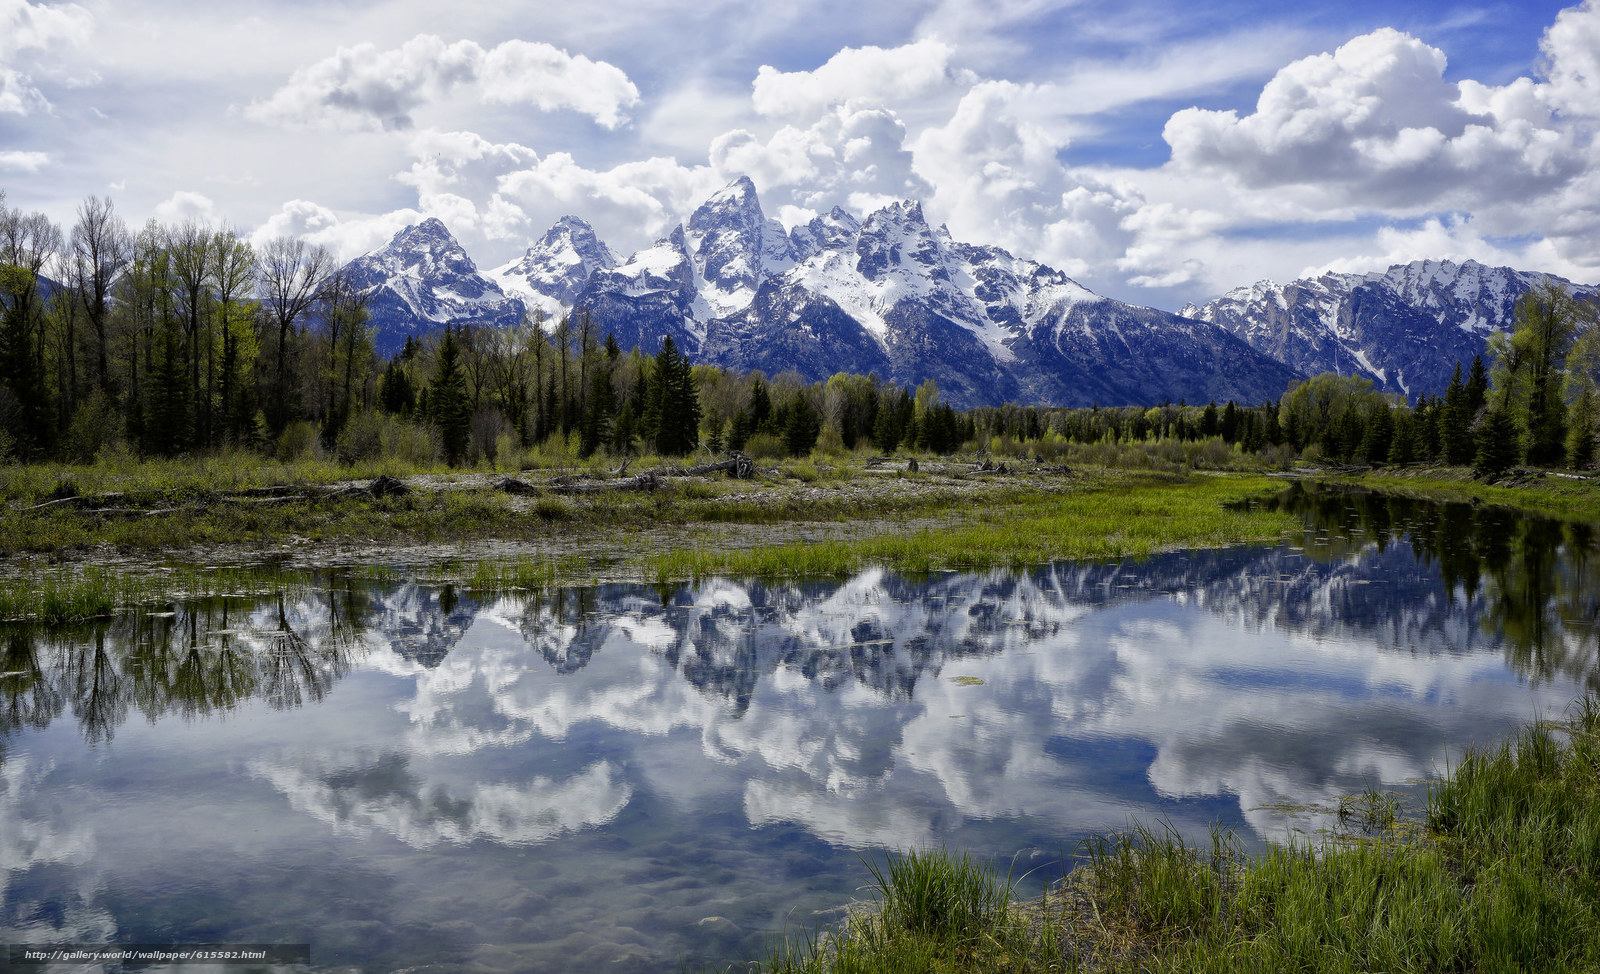 Jackson Hole Wyoming desktop wallpaper in the resolution 1600x974